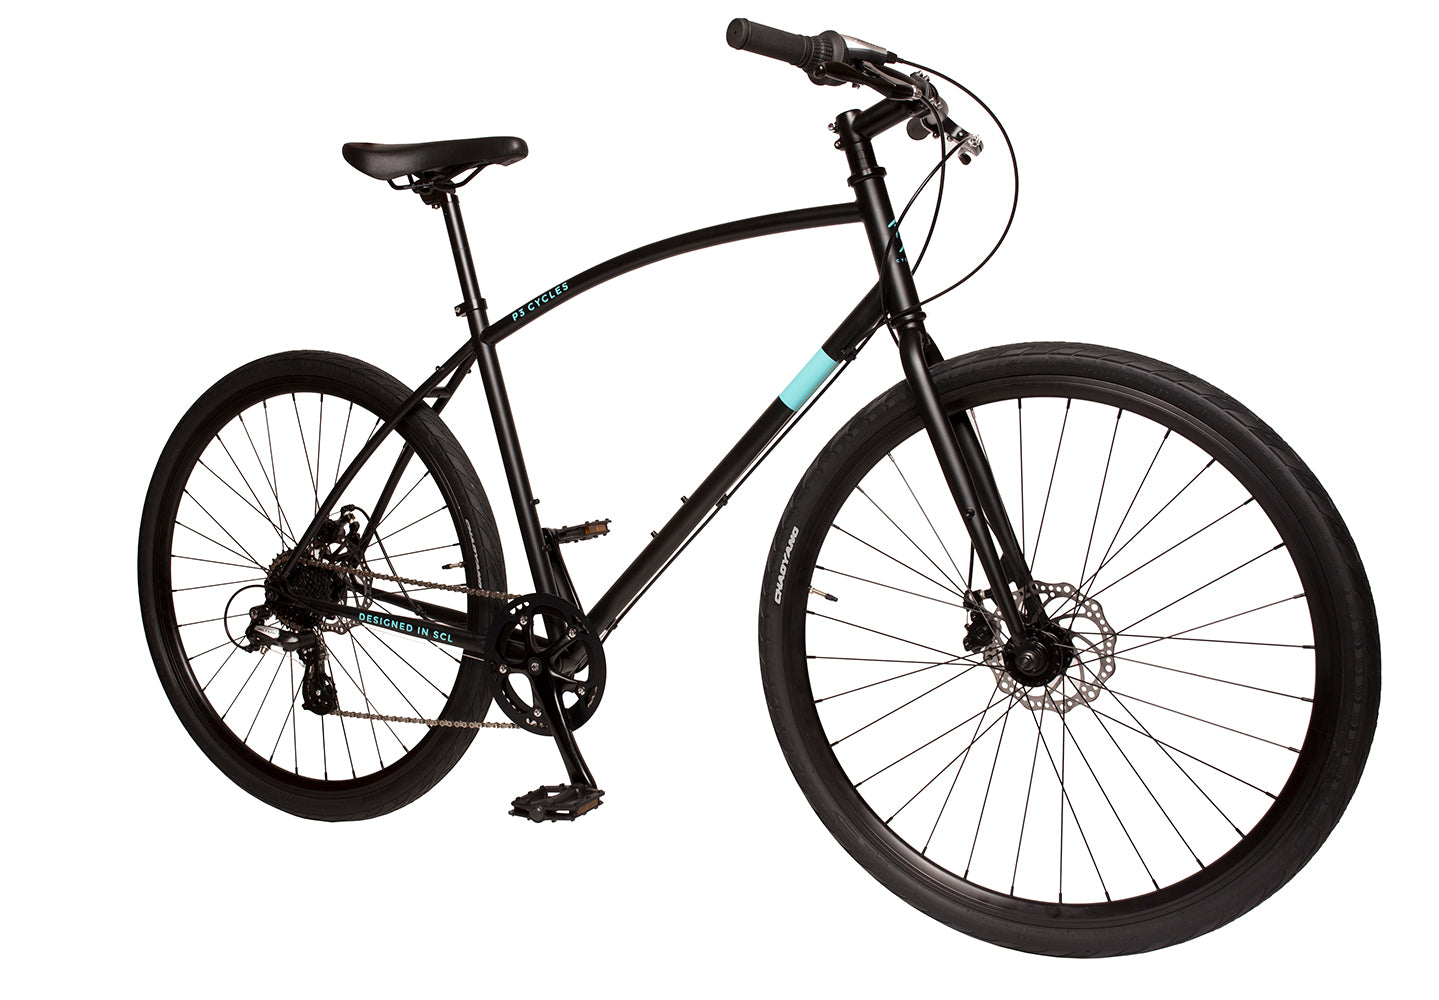 Hibrida Negra - P3 Cycles